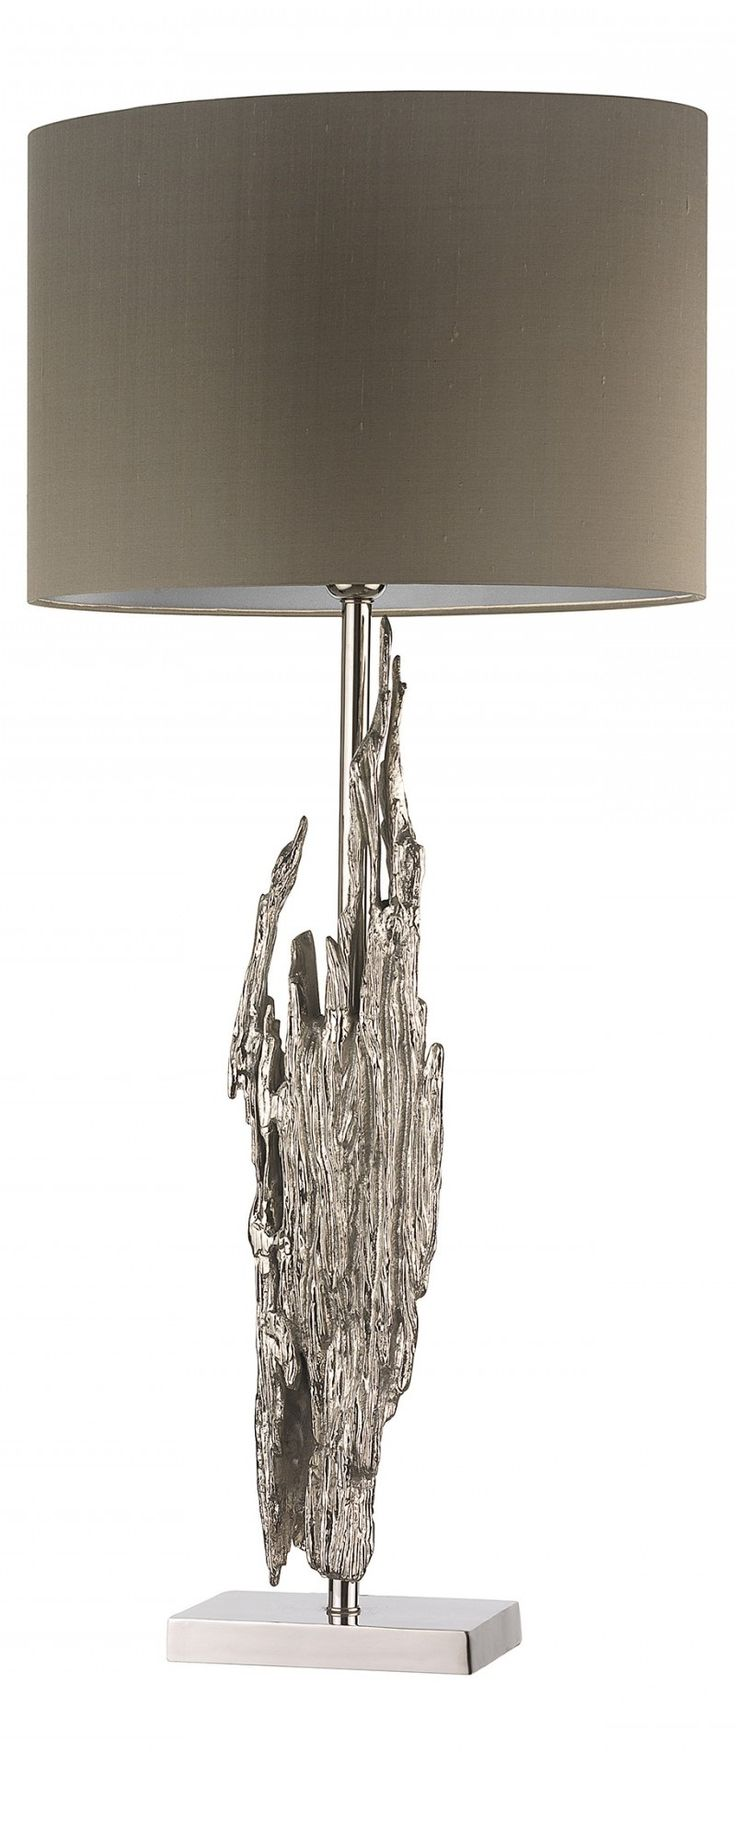 25 Best Ideas About Table Lamps On Pinterest Lamps Table Lamp And Bedside